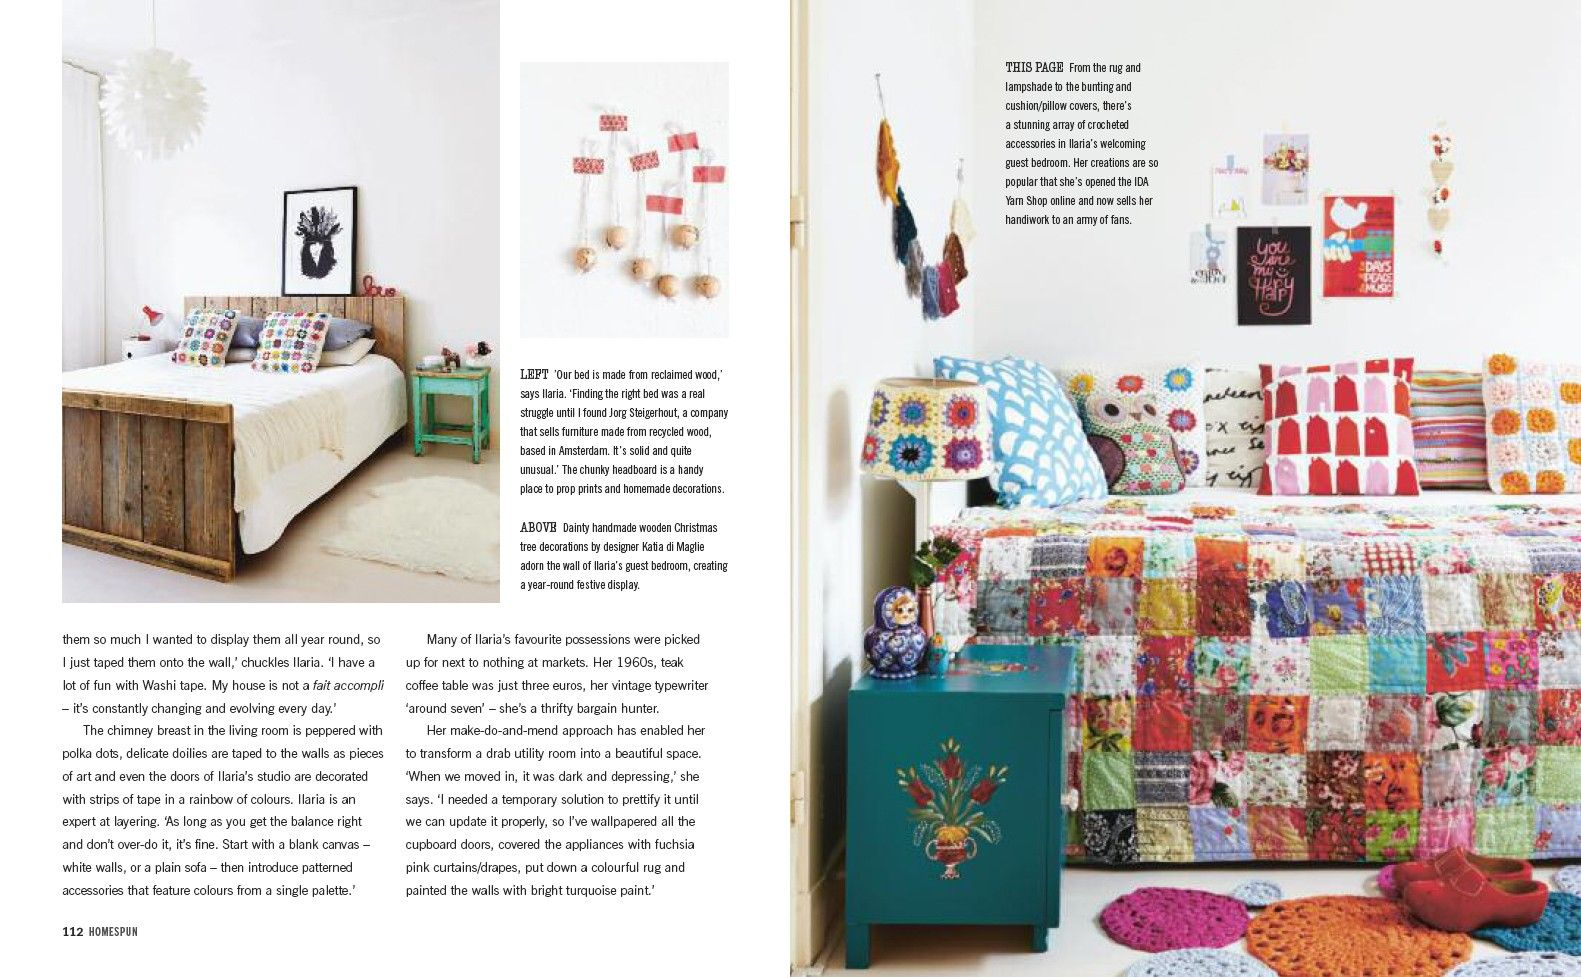 Camp cirrus cushions havet aqua and hus red in new book